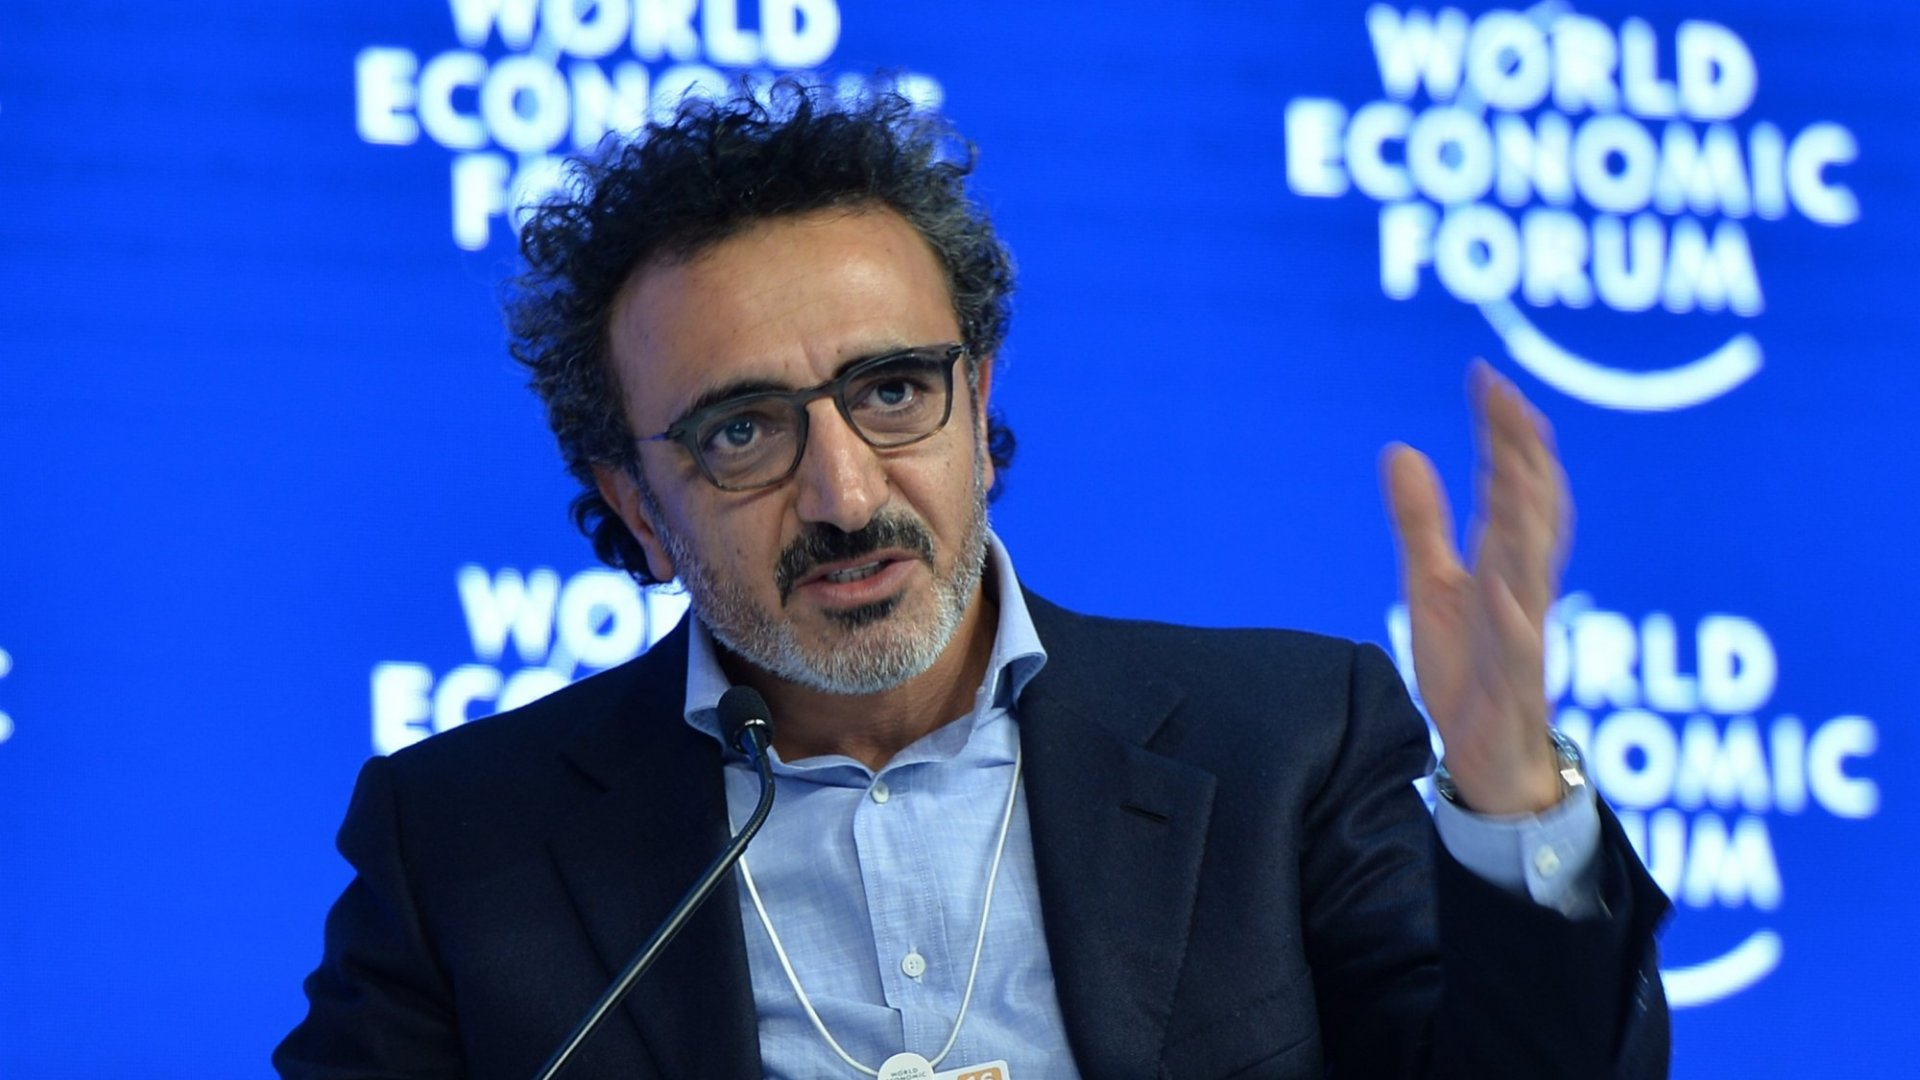 Chobani CEO Announces Plans to Give All of His Employees a Stake in the Company